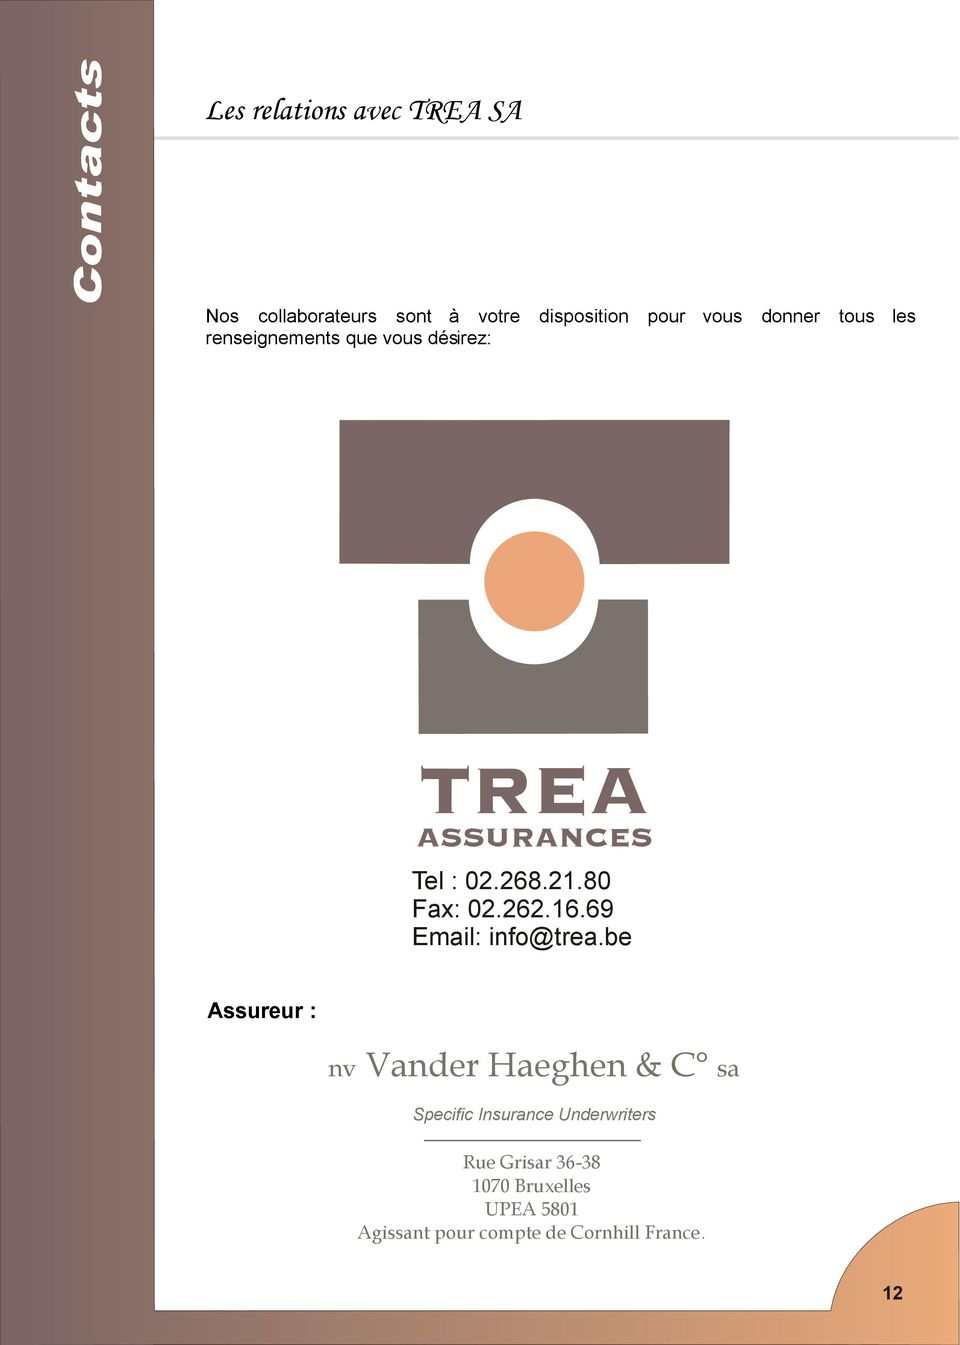 69 Email: info@trea.